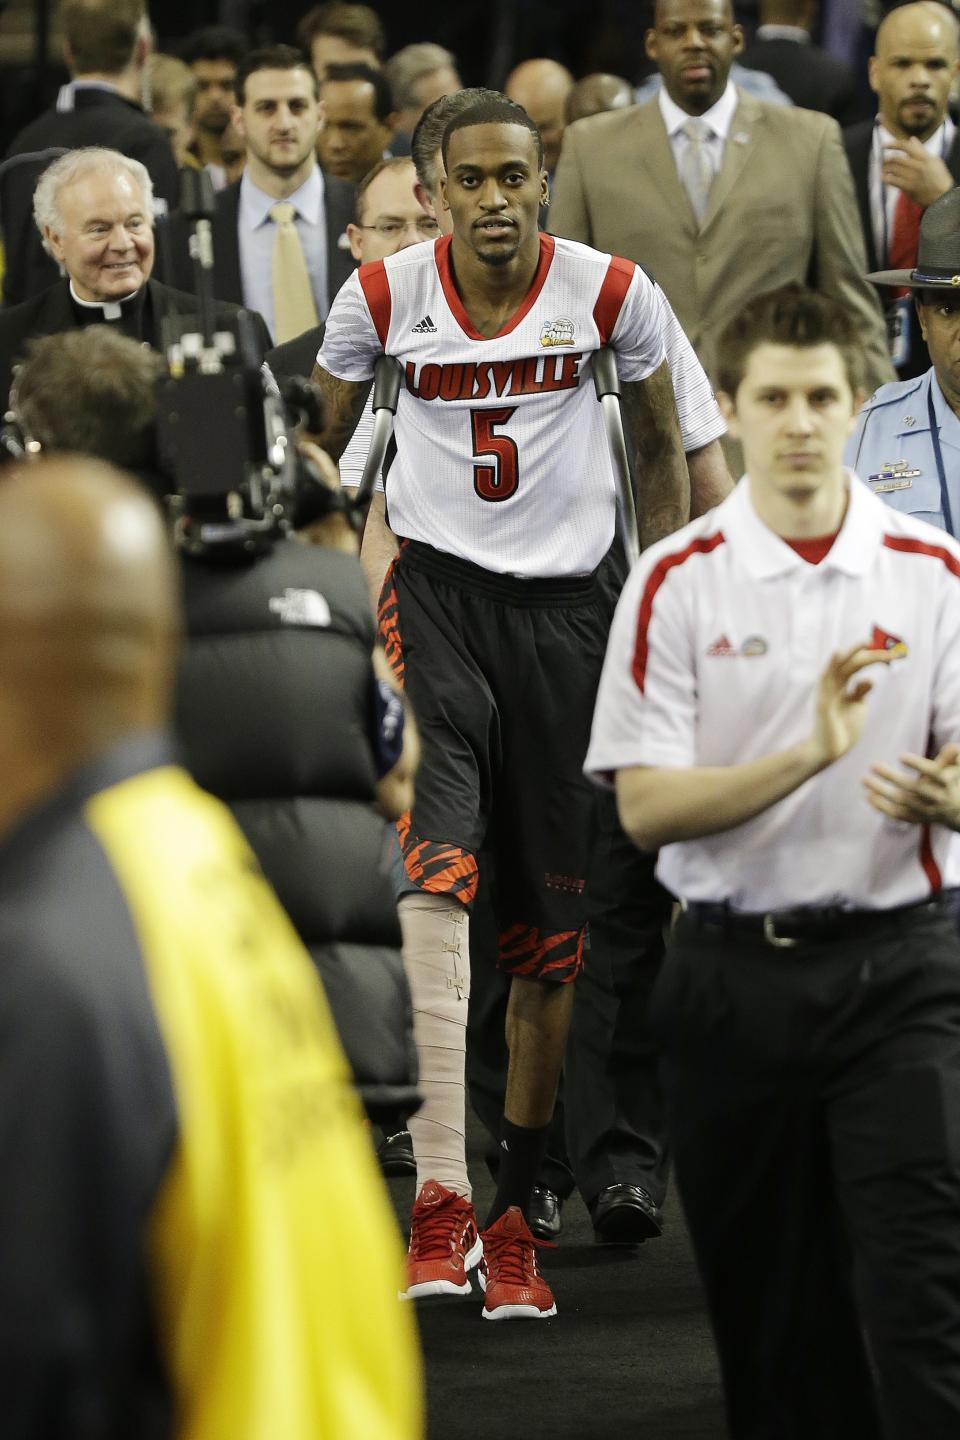 Fans cheer as Louisville's Kevin Ware takes to the court before the first half of the NCAA Final Four tournament college basketball semifinal game against Wichita State, Saturday, April 6, 2013, in Atlanta. (AP Photo/David J. Phillip)